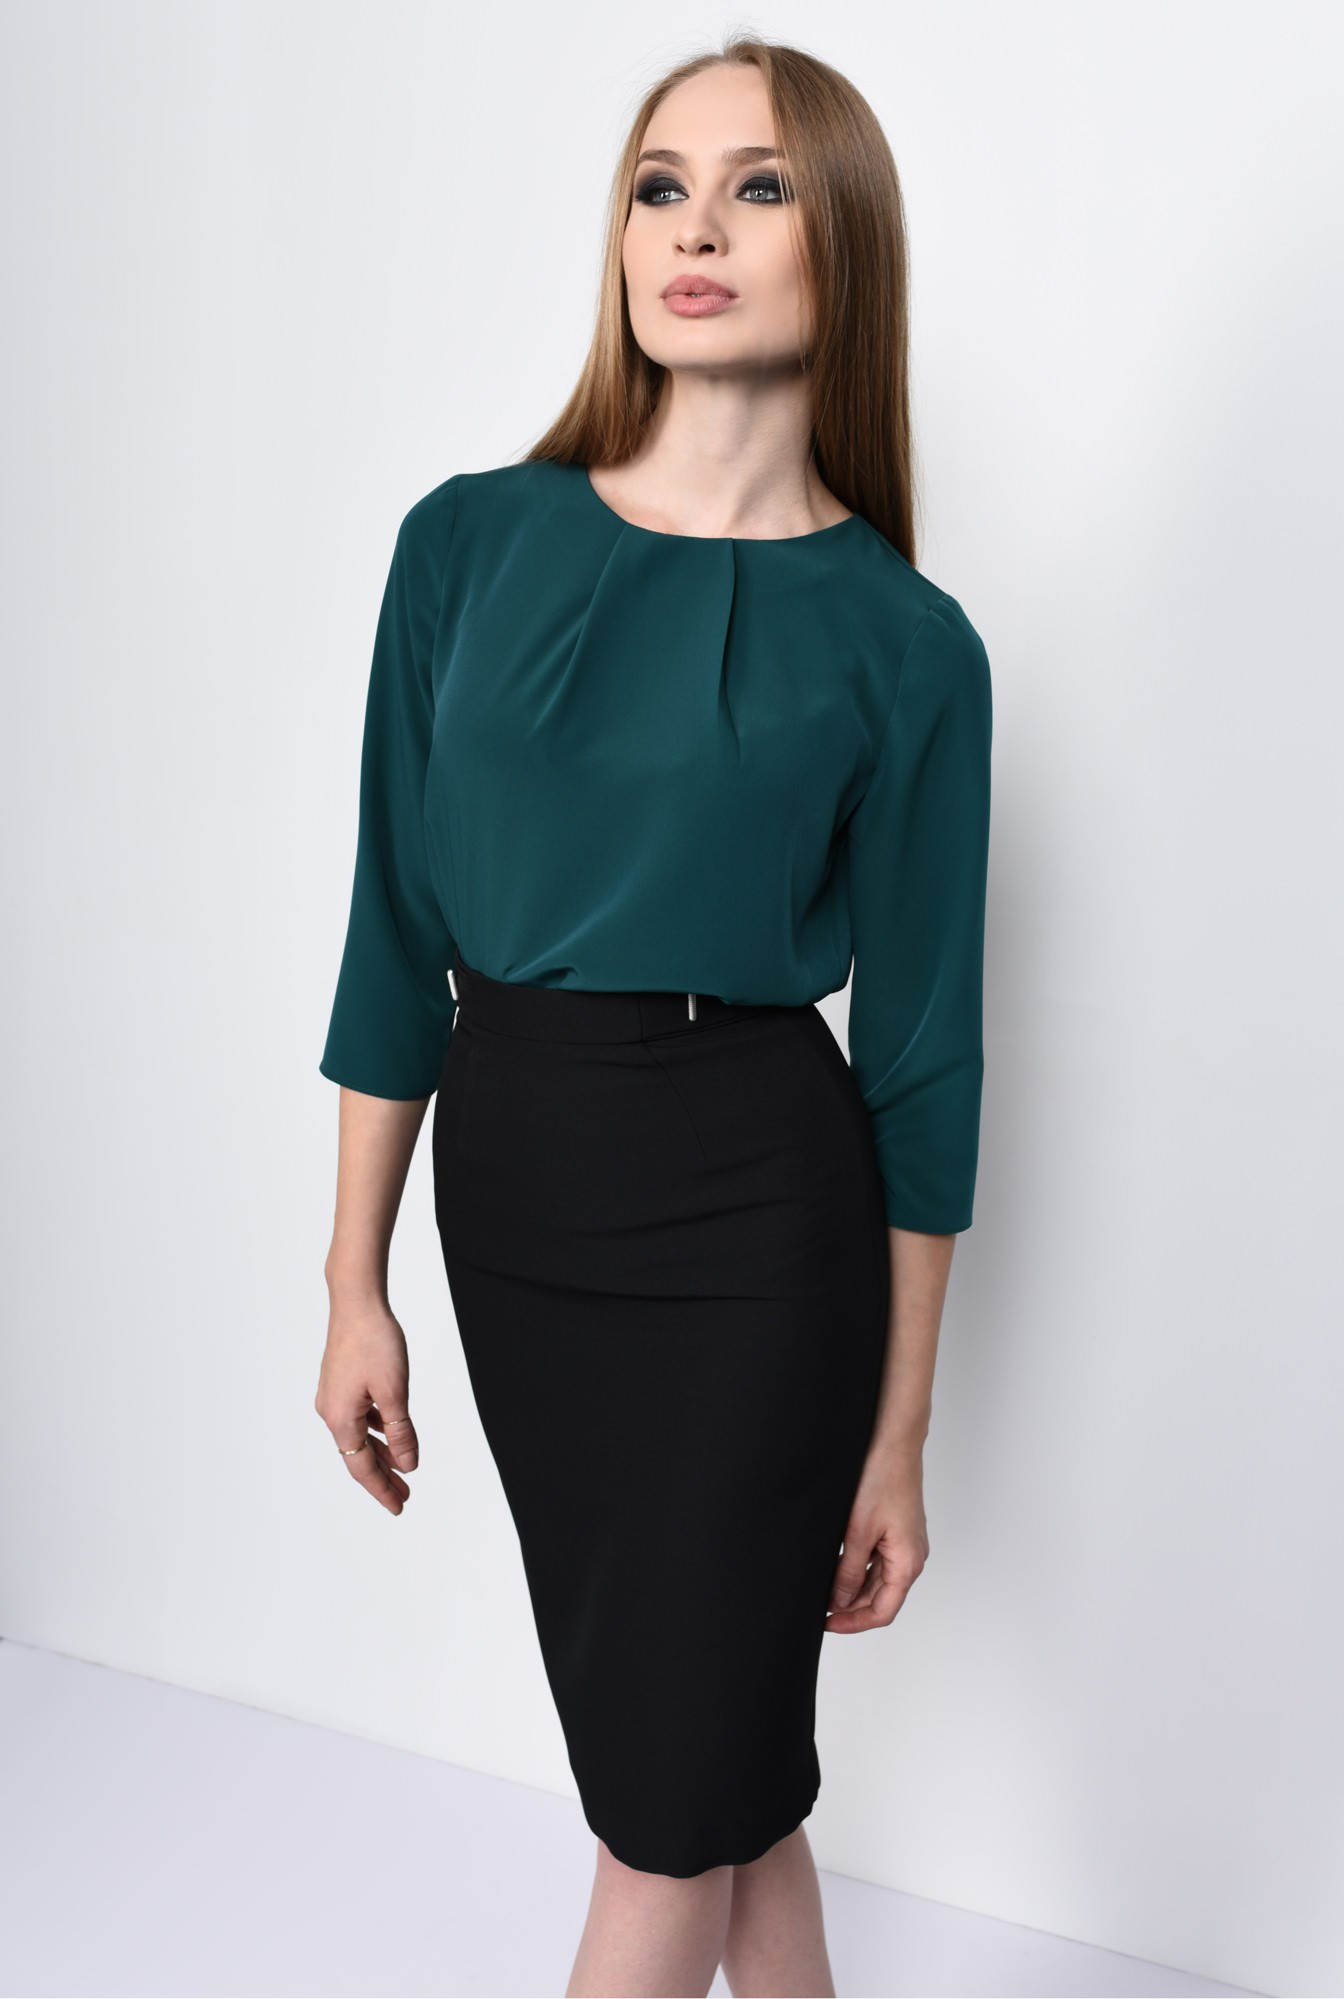 BLUZA OFFICE BL 151-VERDE